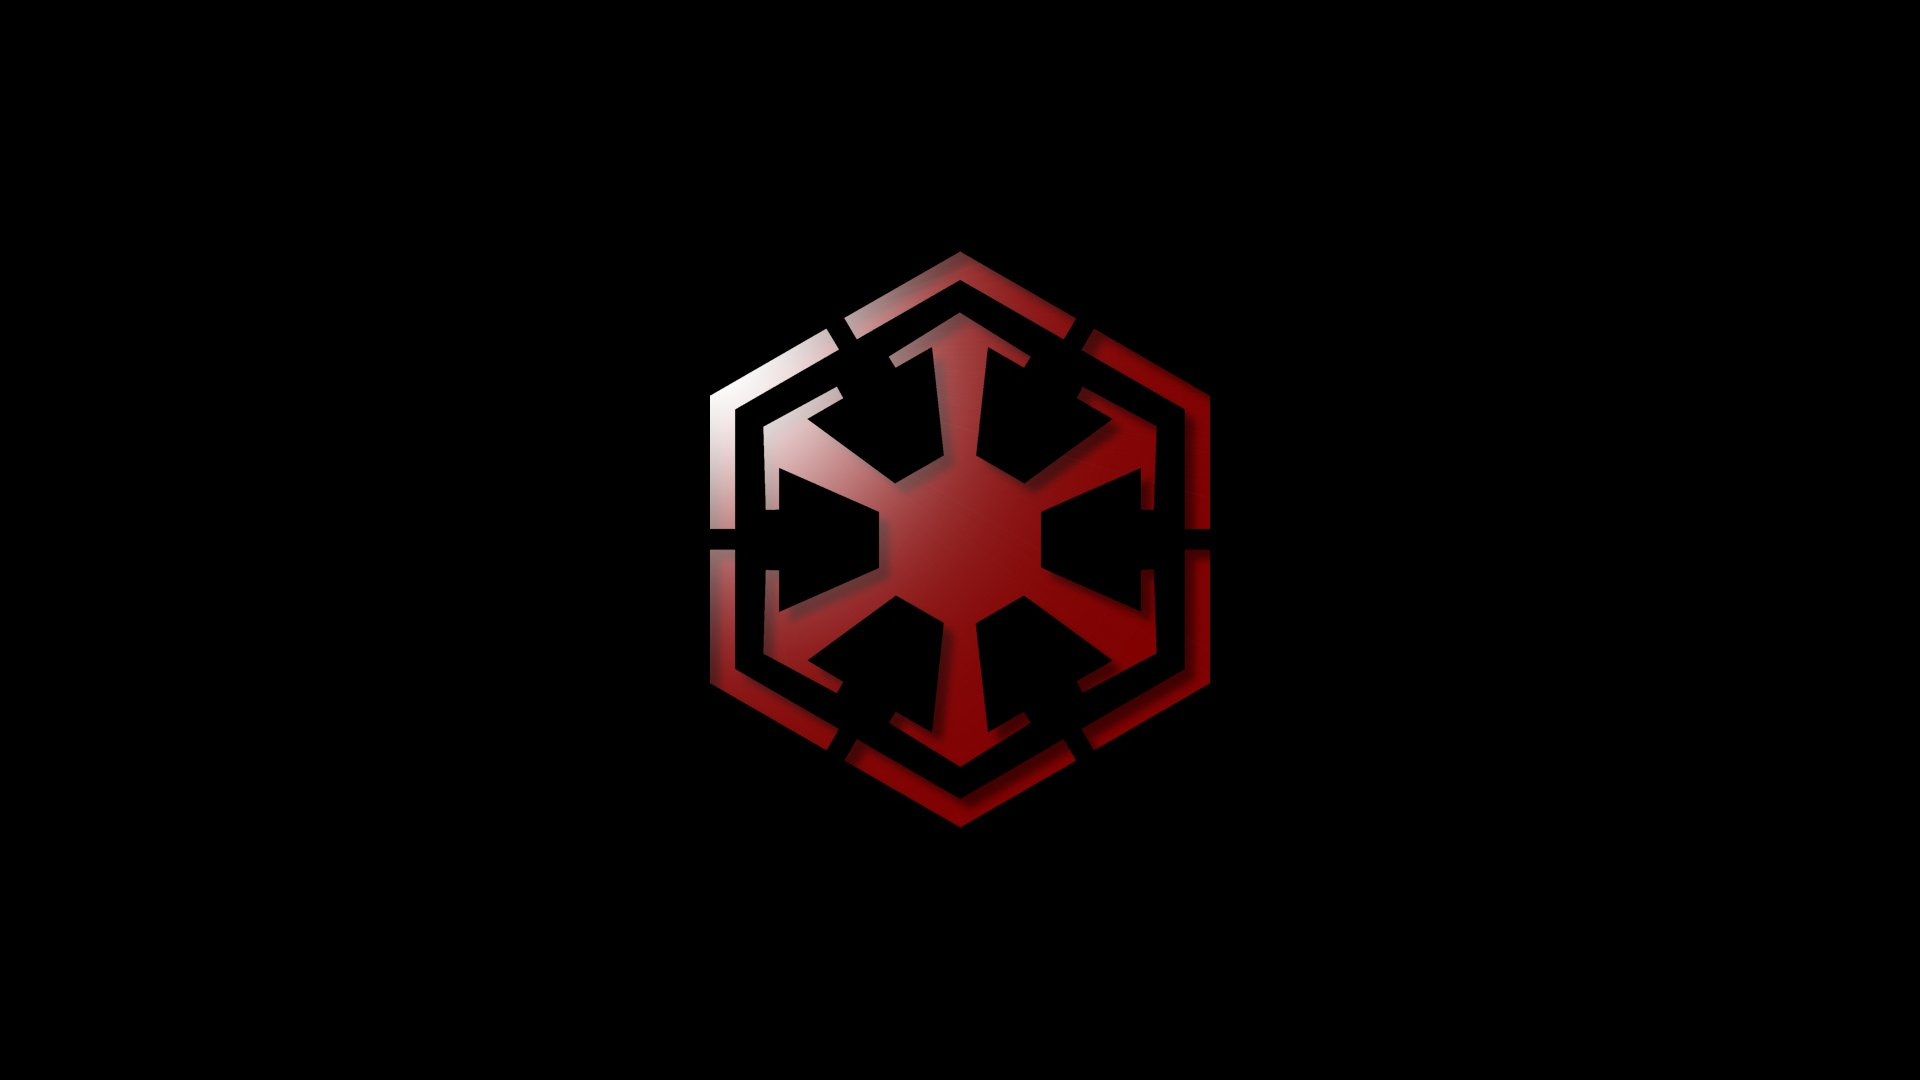 49+] Sith Empire Wallpaper on WallpaperSafari